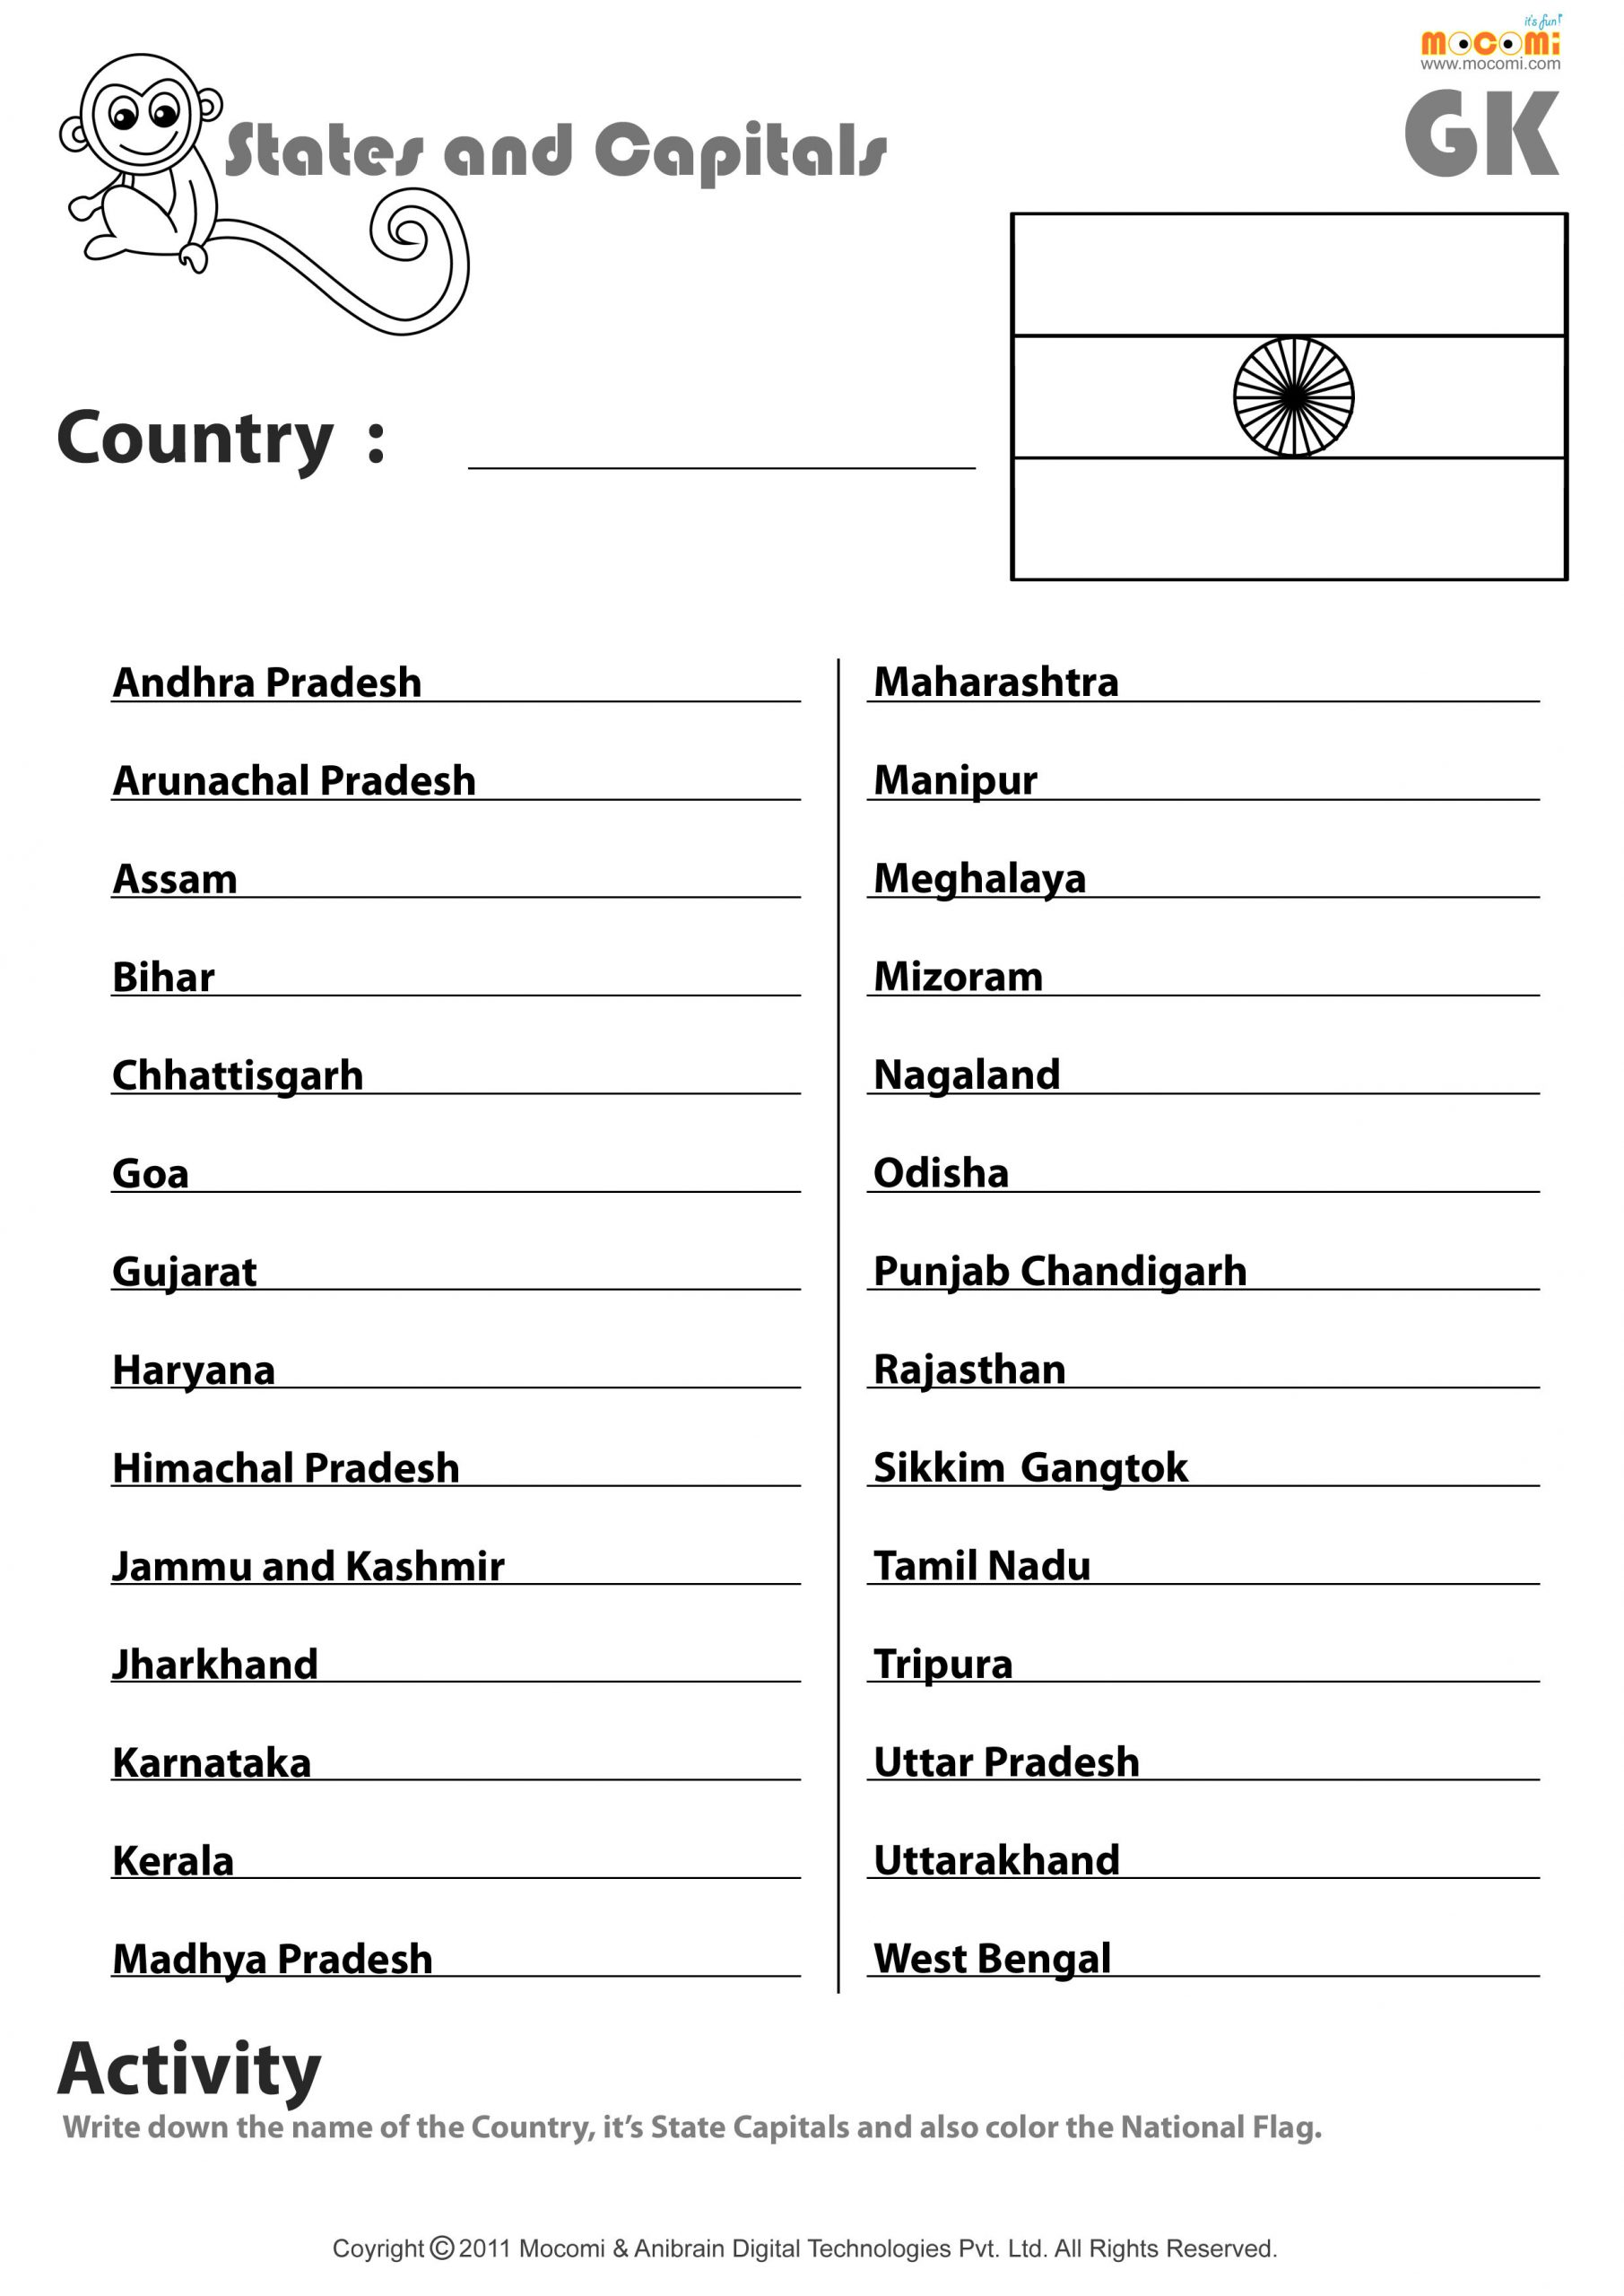 States and Capitals Quiz Printable Indian States and their Capitals English Worksheets for